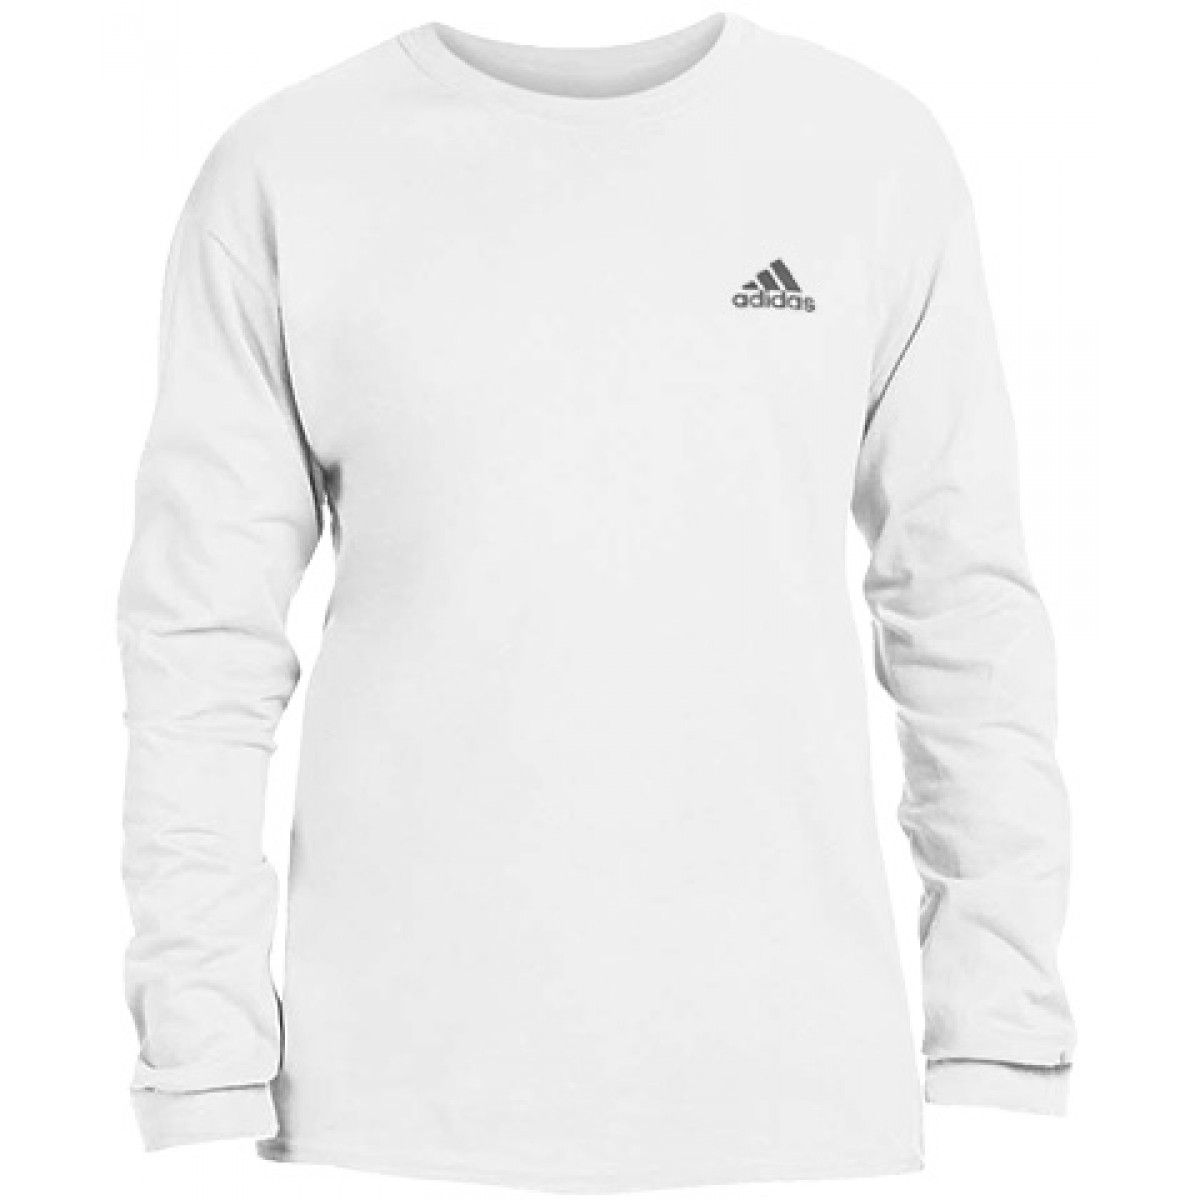 Men's Ultimate Long Sleeve Adidas Crew Tee-White-M